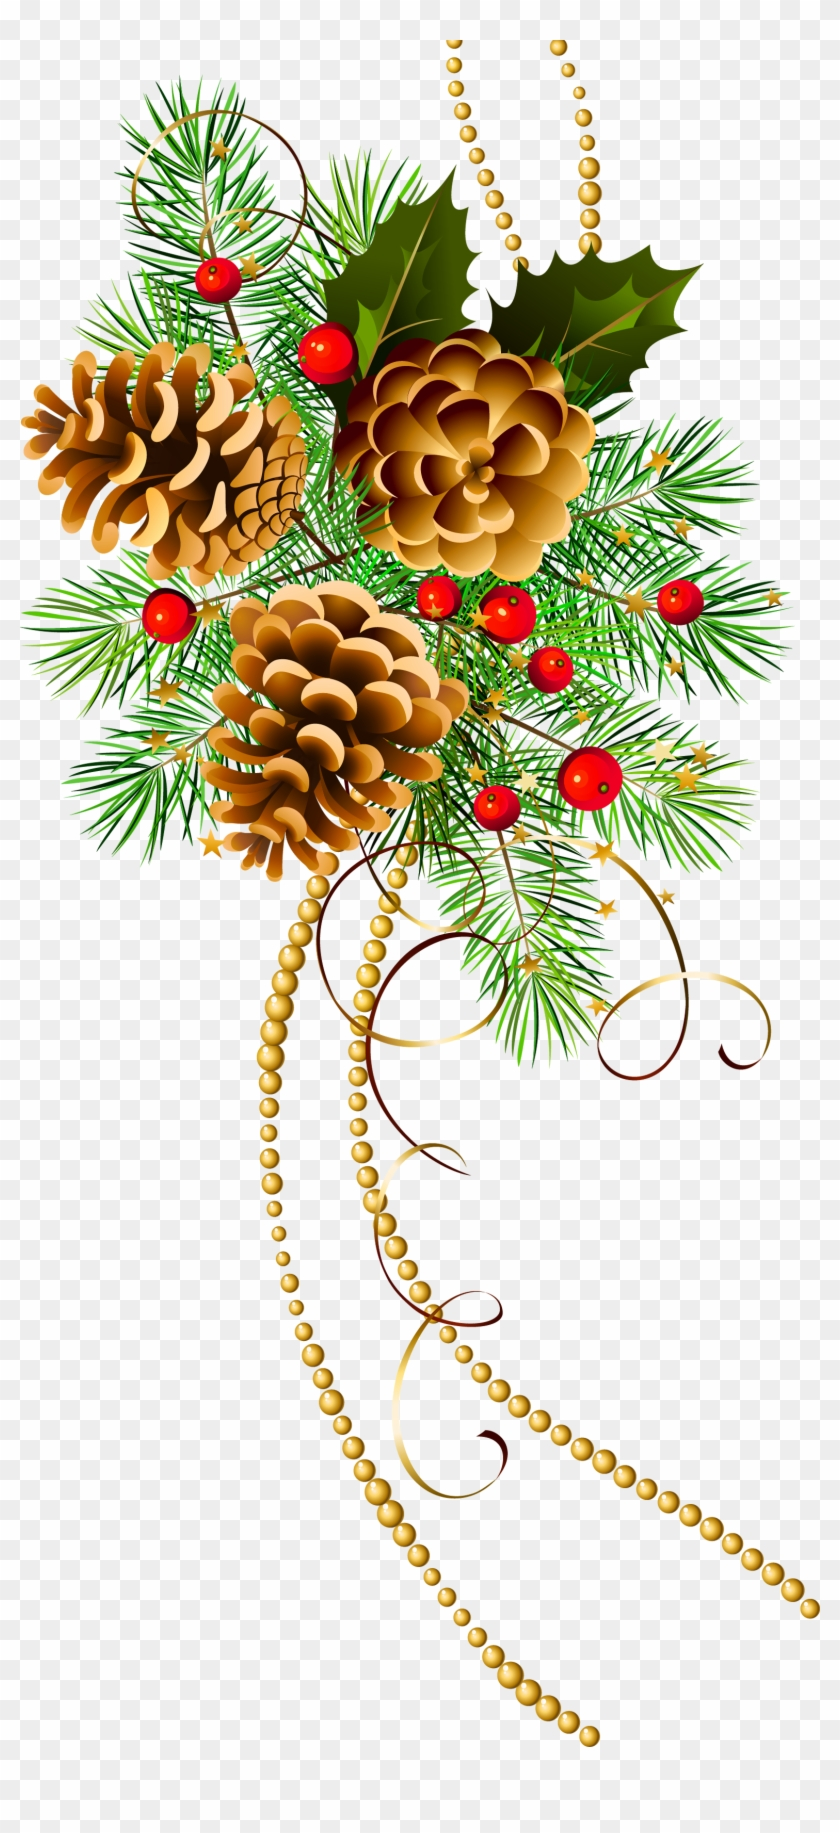 Three Christmas Cones With Pine Branch Clipart.